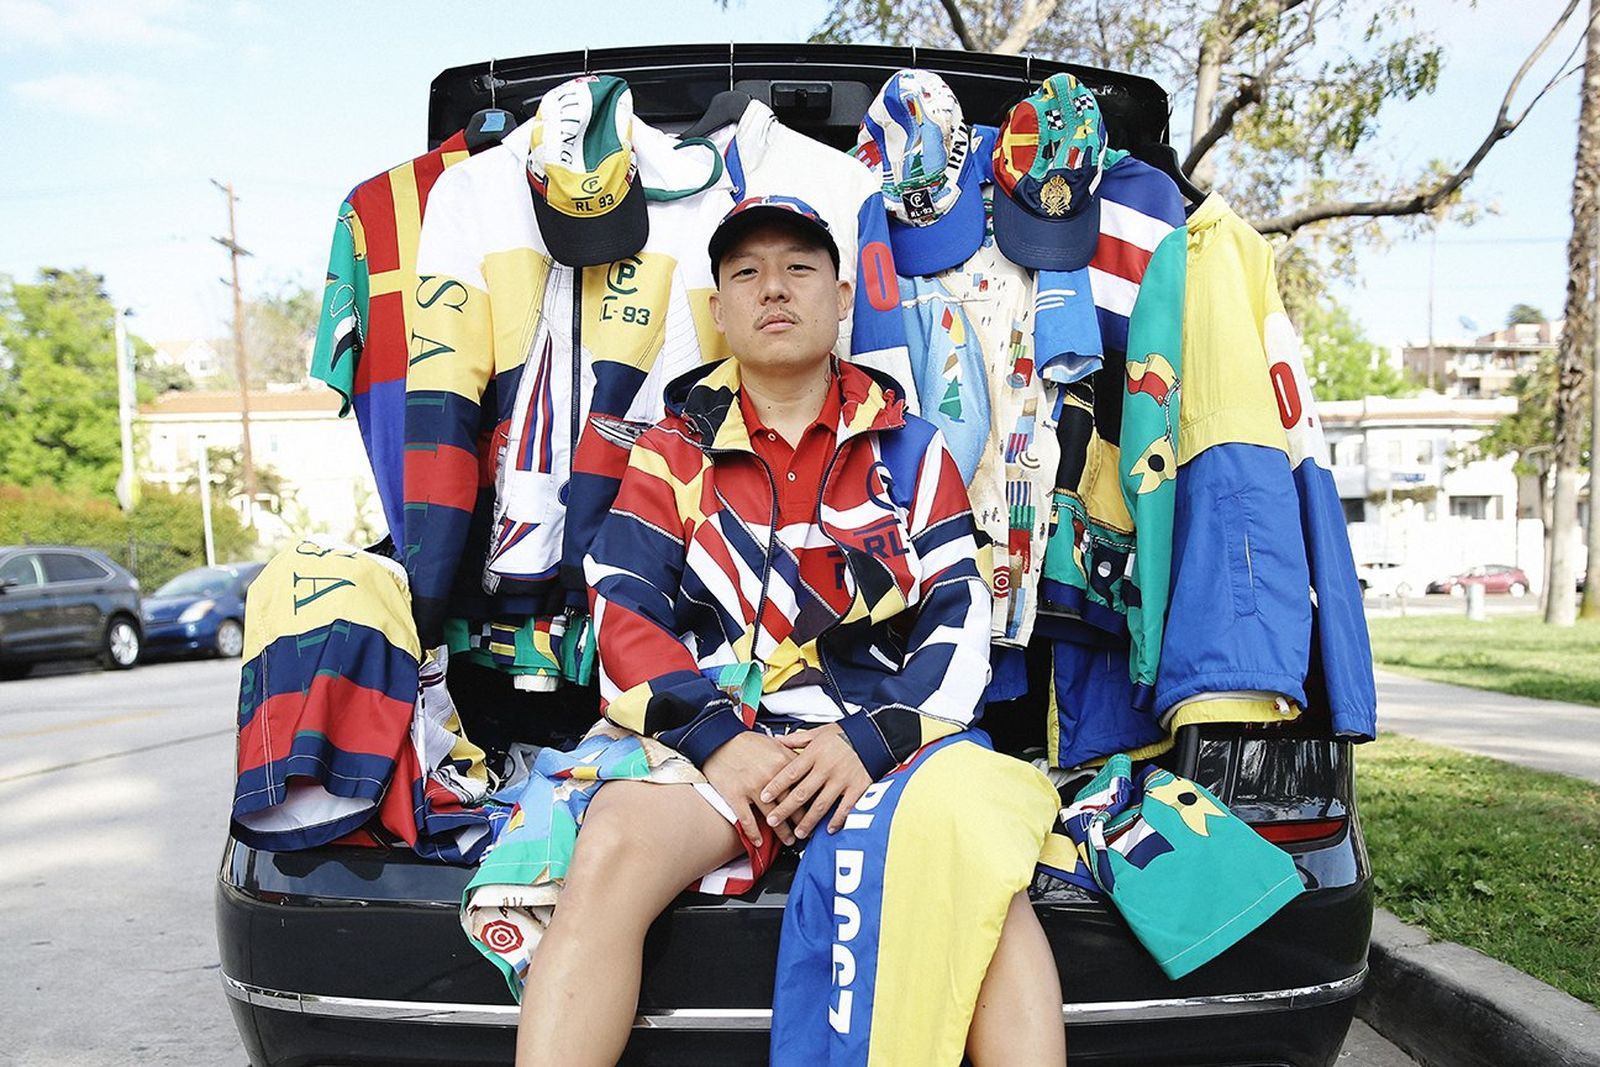 eddie huang commonwealth cp Ralph Lauren lo life palace